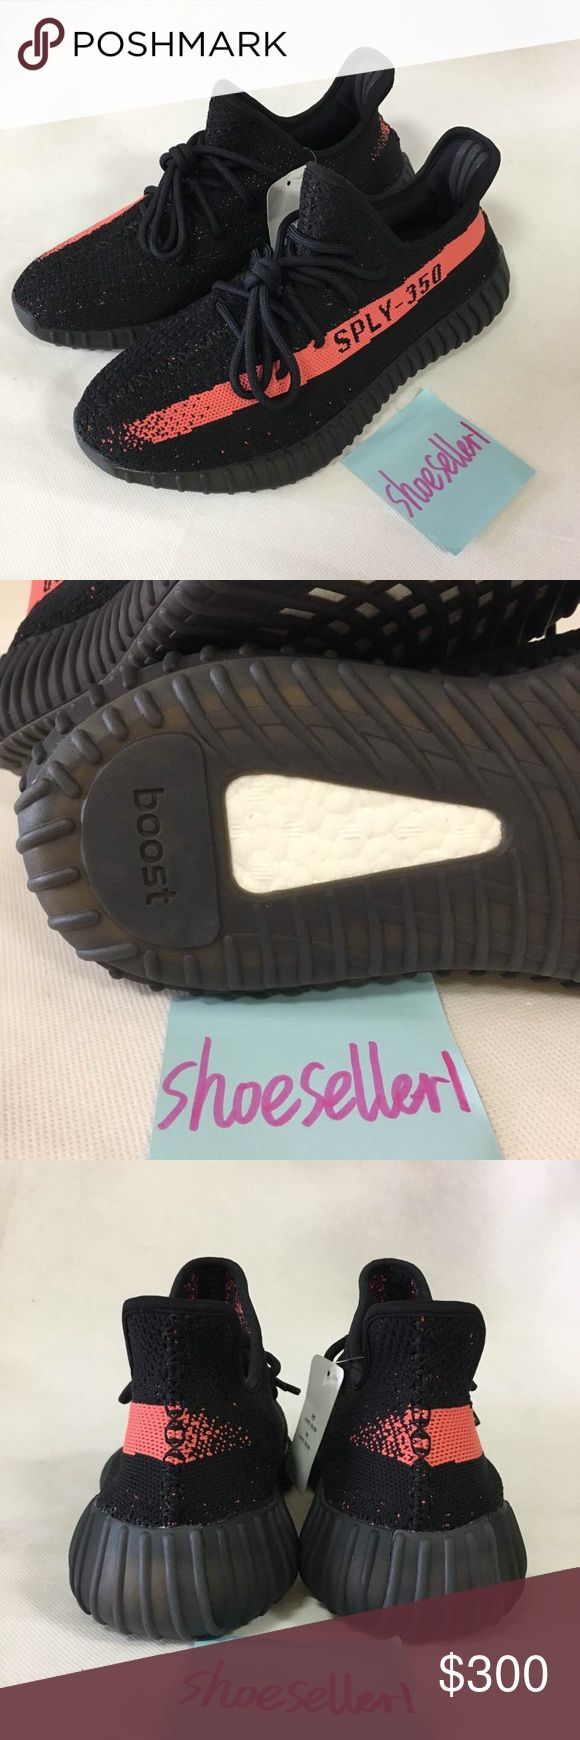 8f5440a1efb YEEZY 350 V2 RED REPLICA REVIEW DHGATE